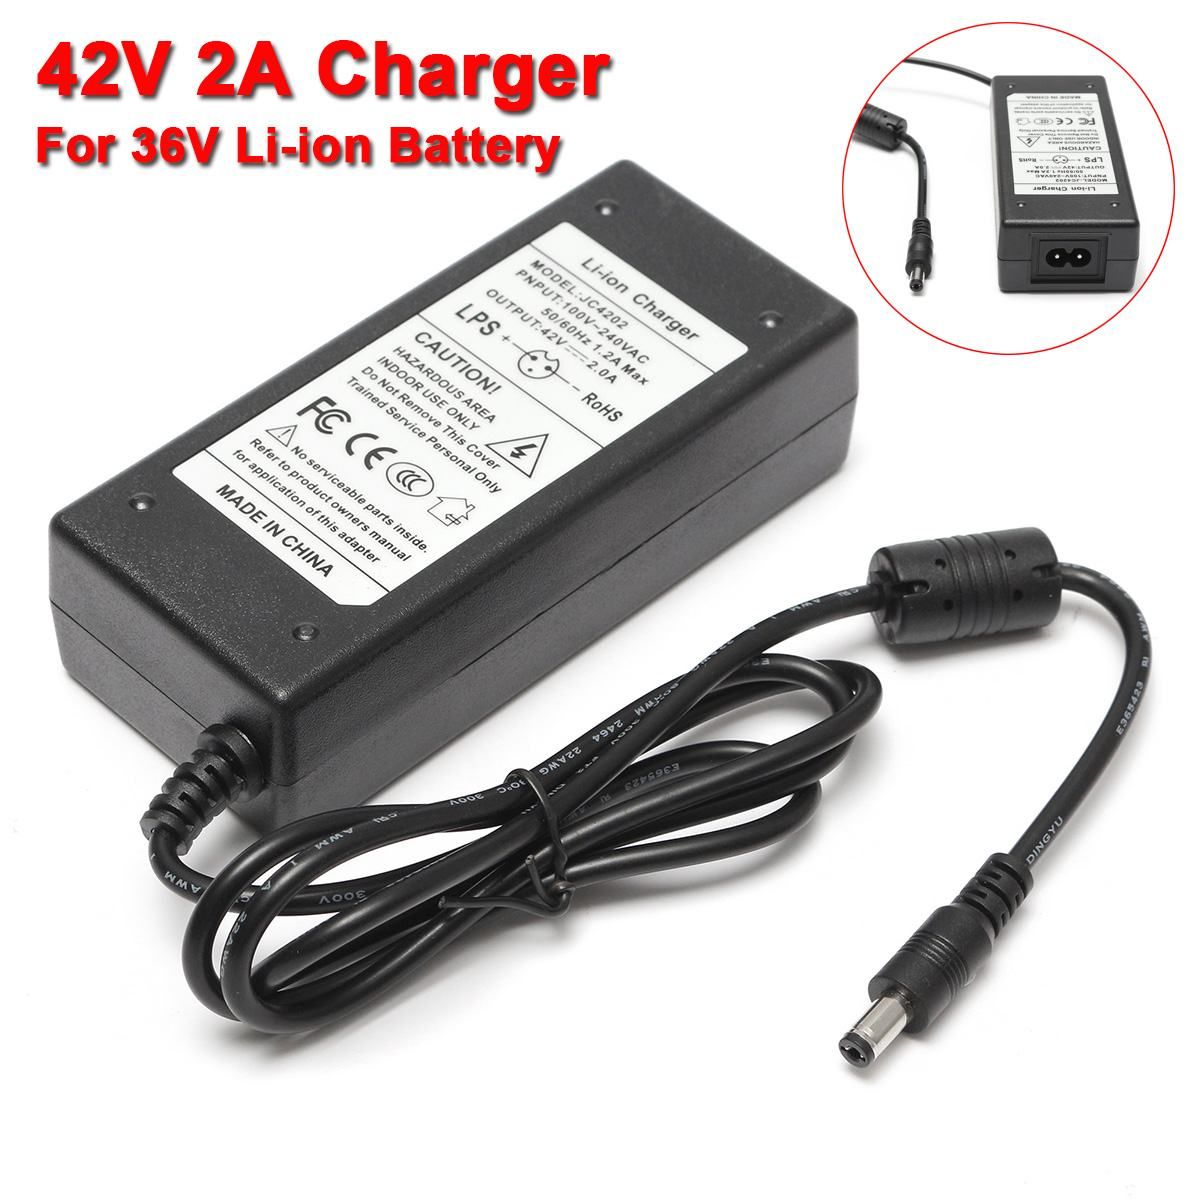 <font><b>42V</b></font> 2A Charger For 36V Li-ion Lithium Battery Two-Wheel Self-Balanced Vehicle ! image